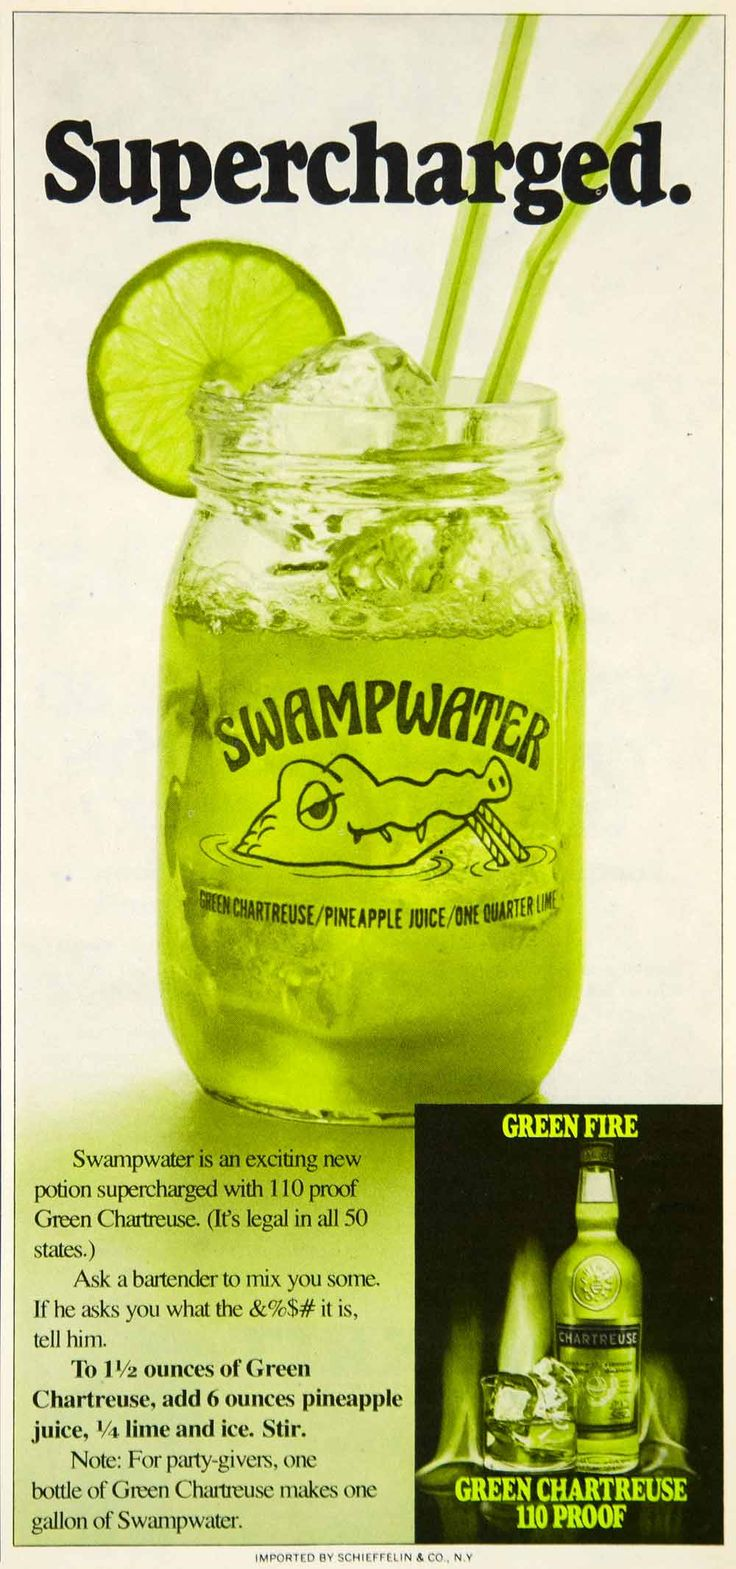 1975 Ad Green Fire Chartreuse 110 Proof Alcohol Beverage Swampwater Mixed Drink #vintage #alcohol #advertising #swampwater